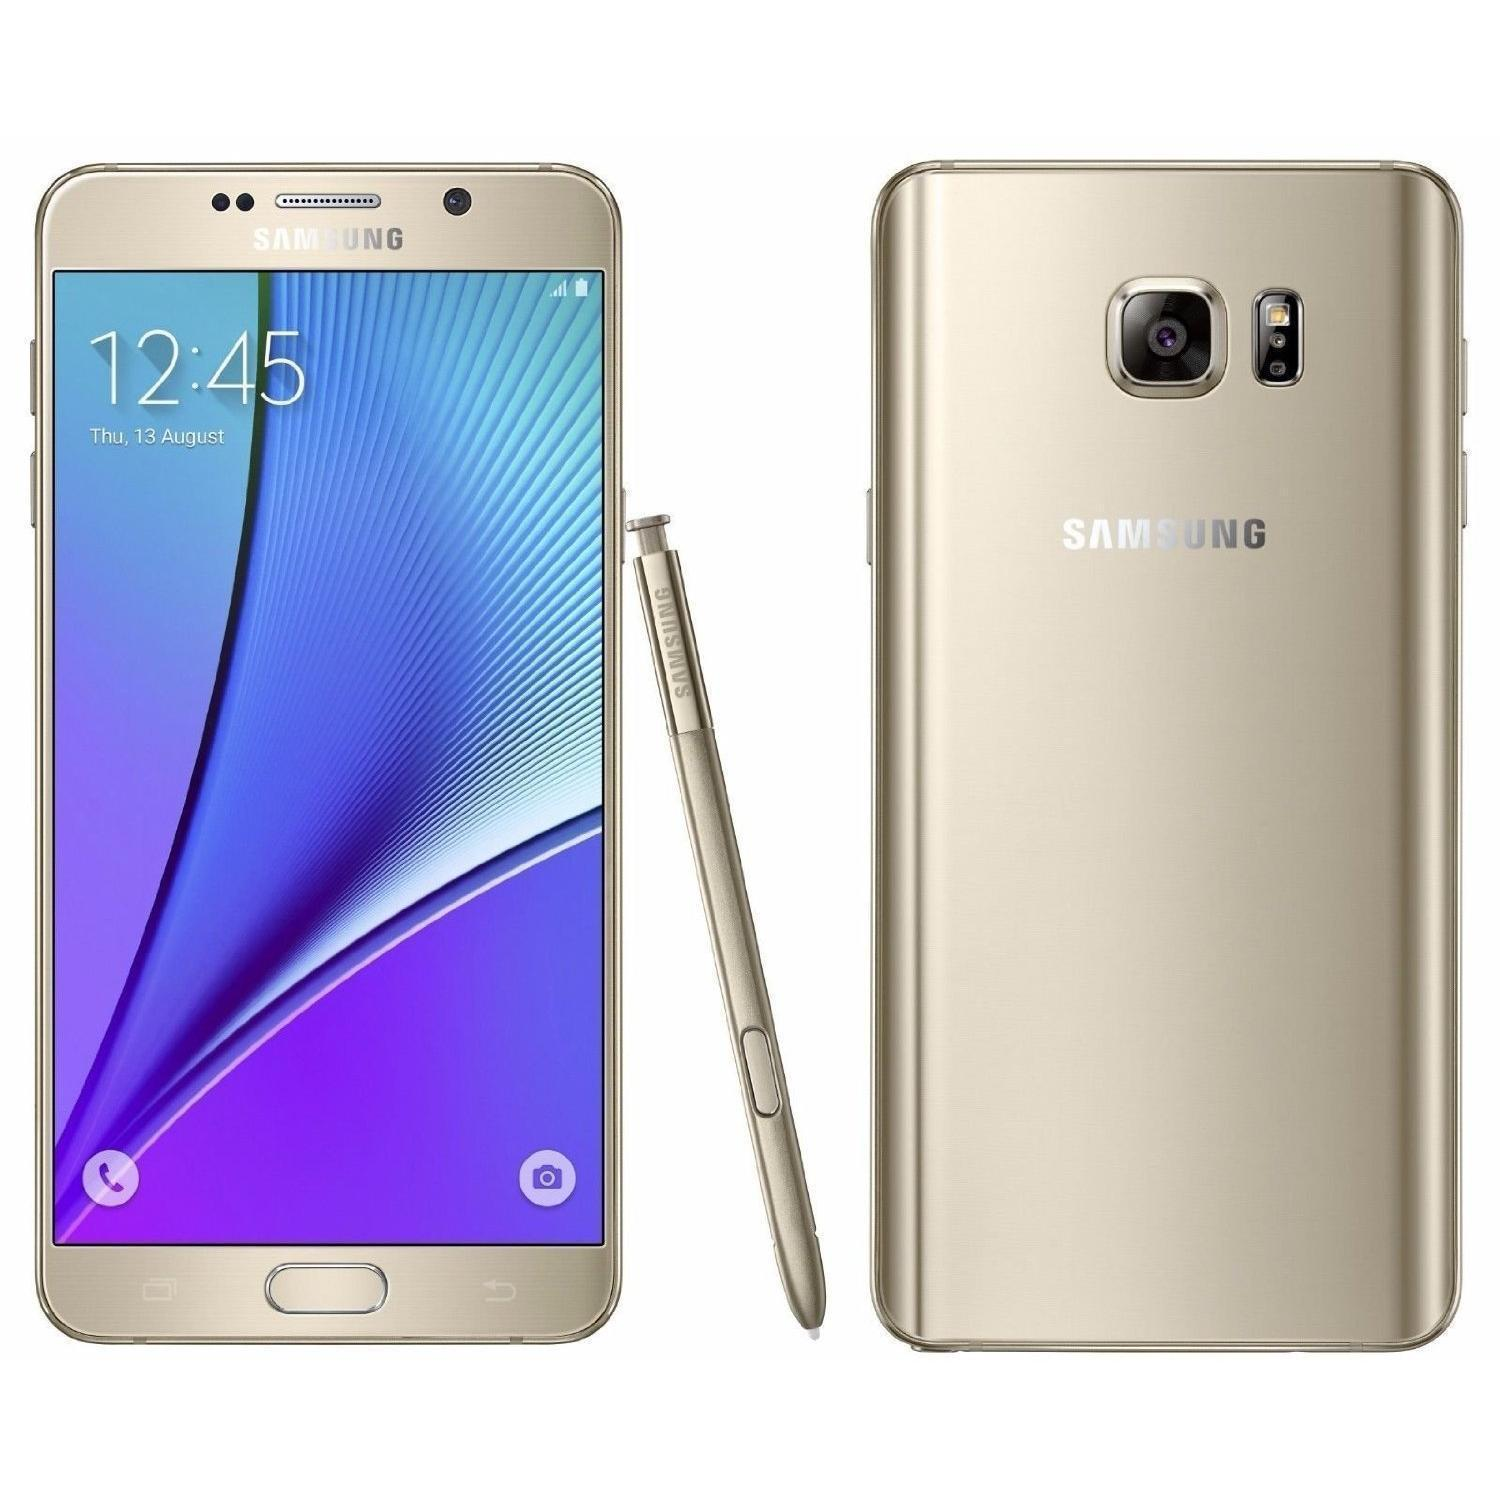 Samsung Galaxy Note 5 - 64 GB - Oro - Libre